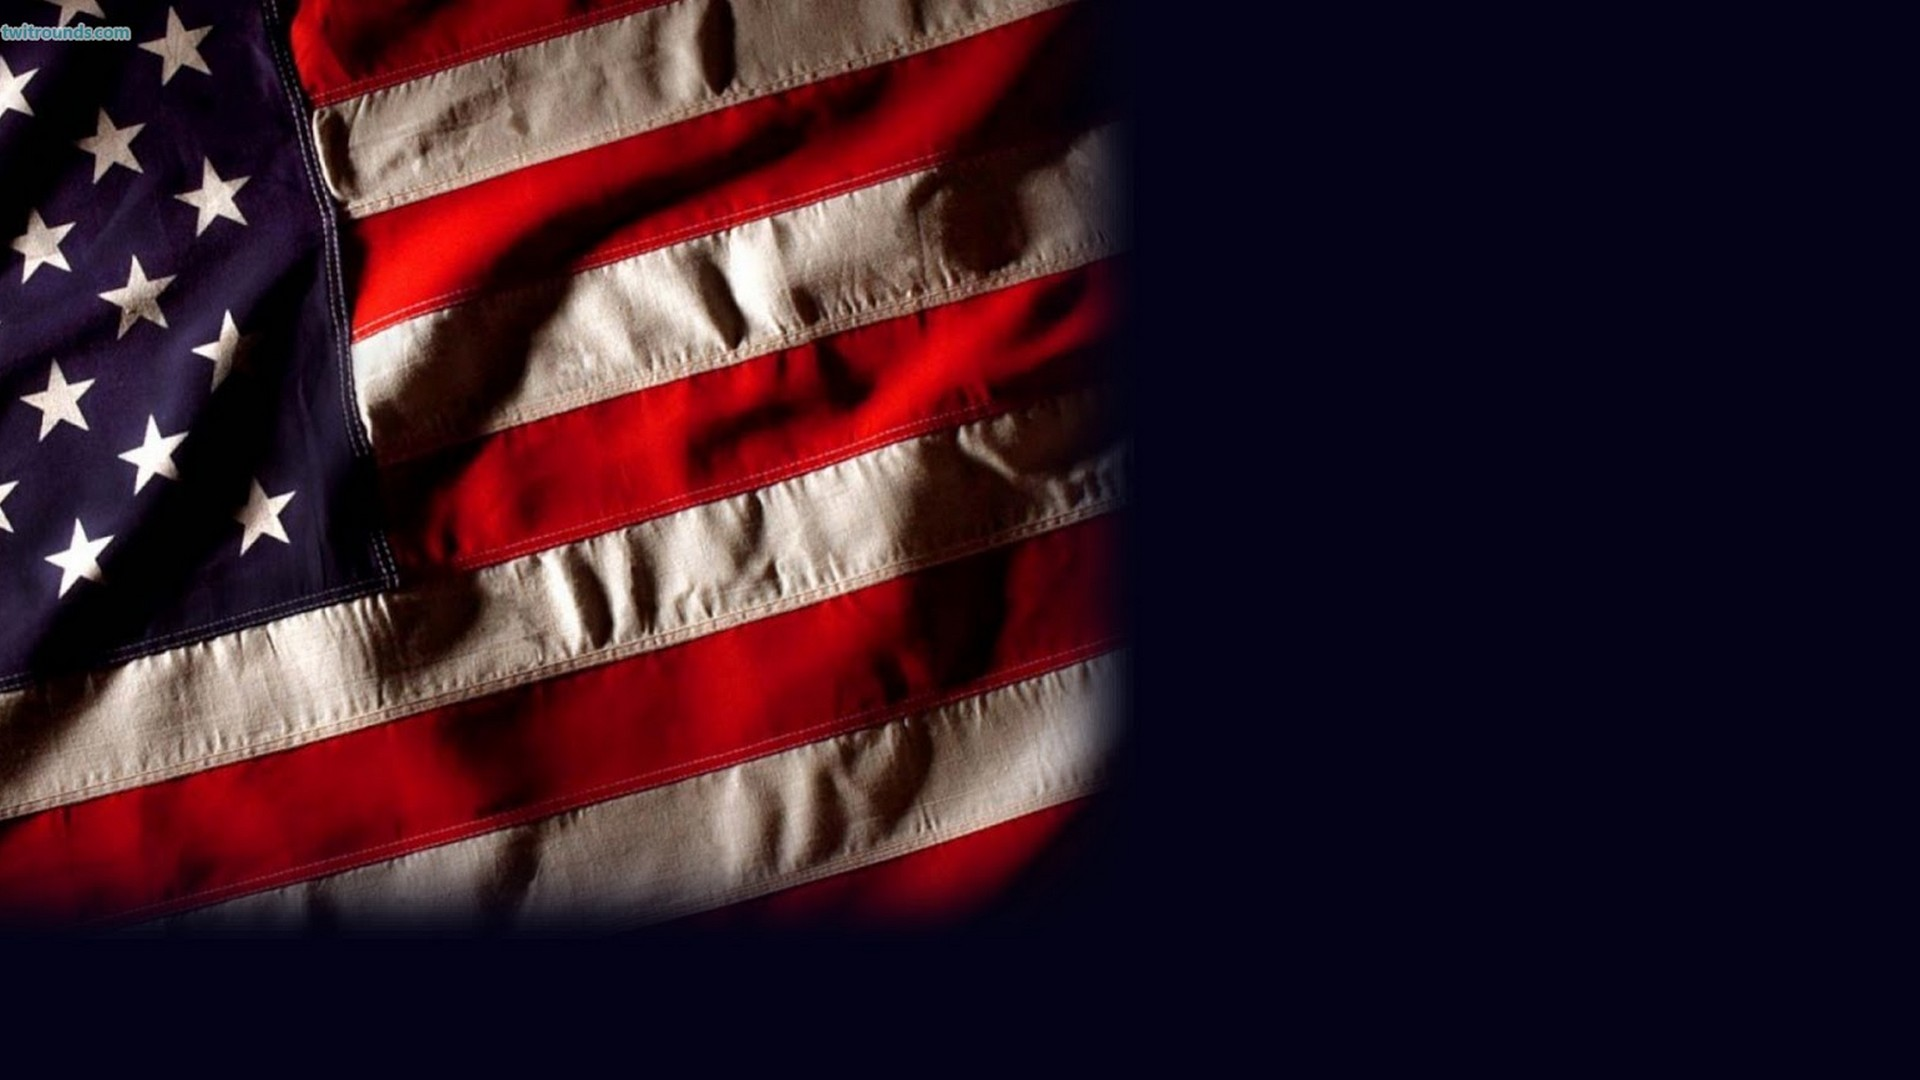 American Flag Wallpaper HD For Desktop With high-resolution 1920X1080 pixel. You can use and set as background for your Mac Desktop Background, Windows Screensavers, iPhone Wallpapers, Tablet or Android Lock screen and another Smartphone